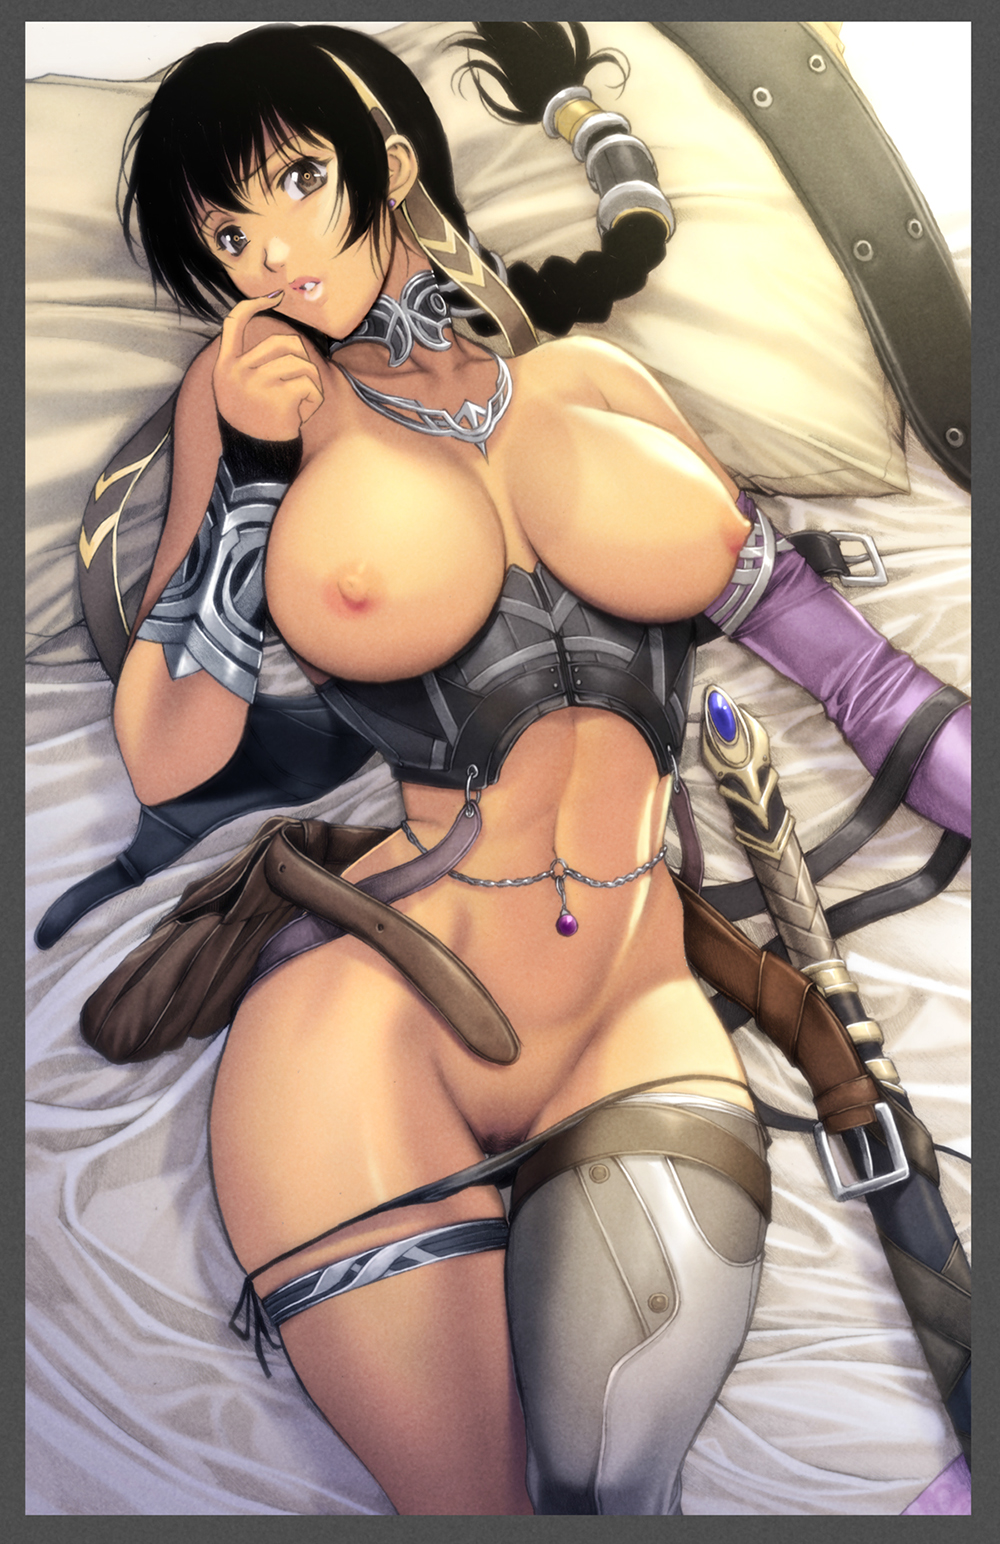 Hentai fucked by orcs naked pictures